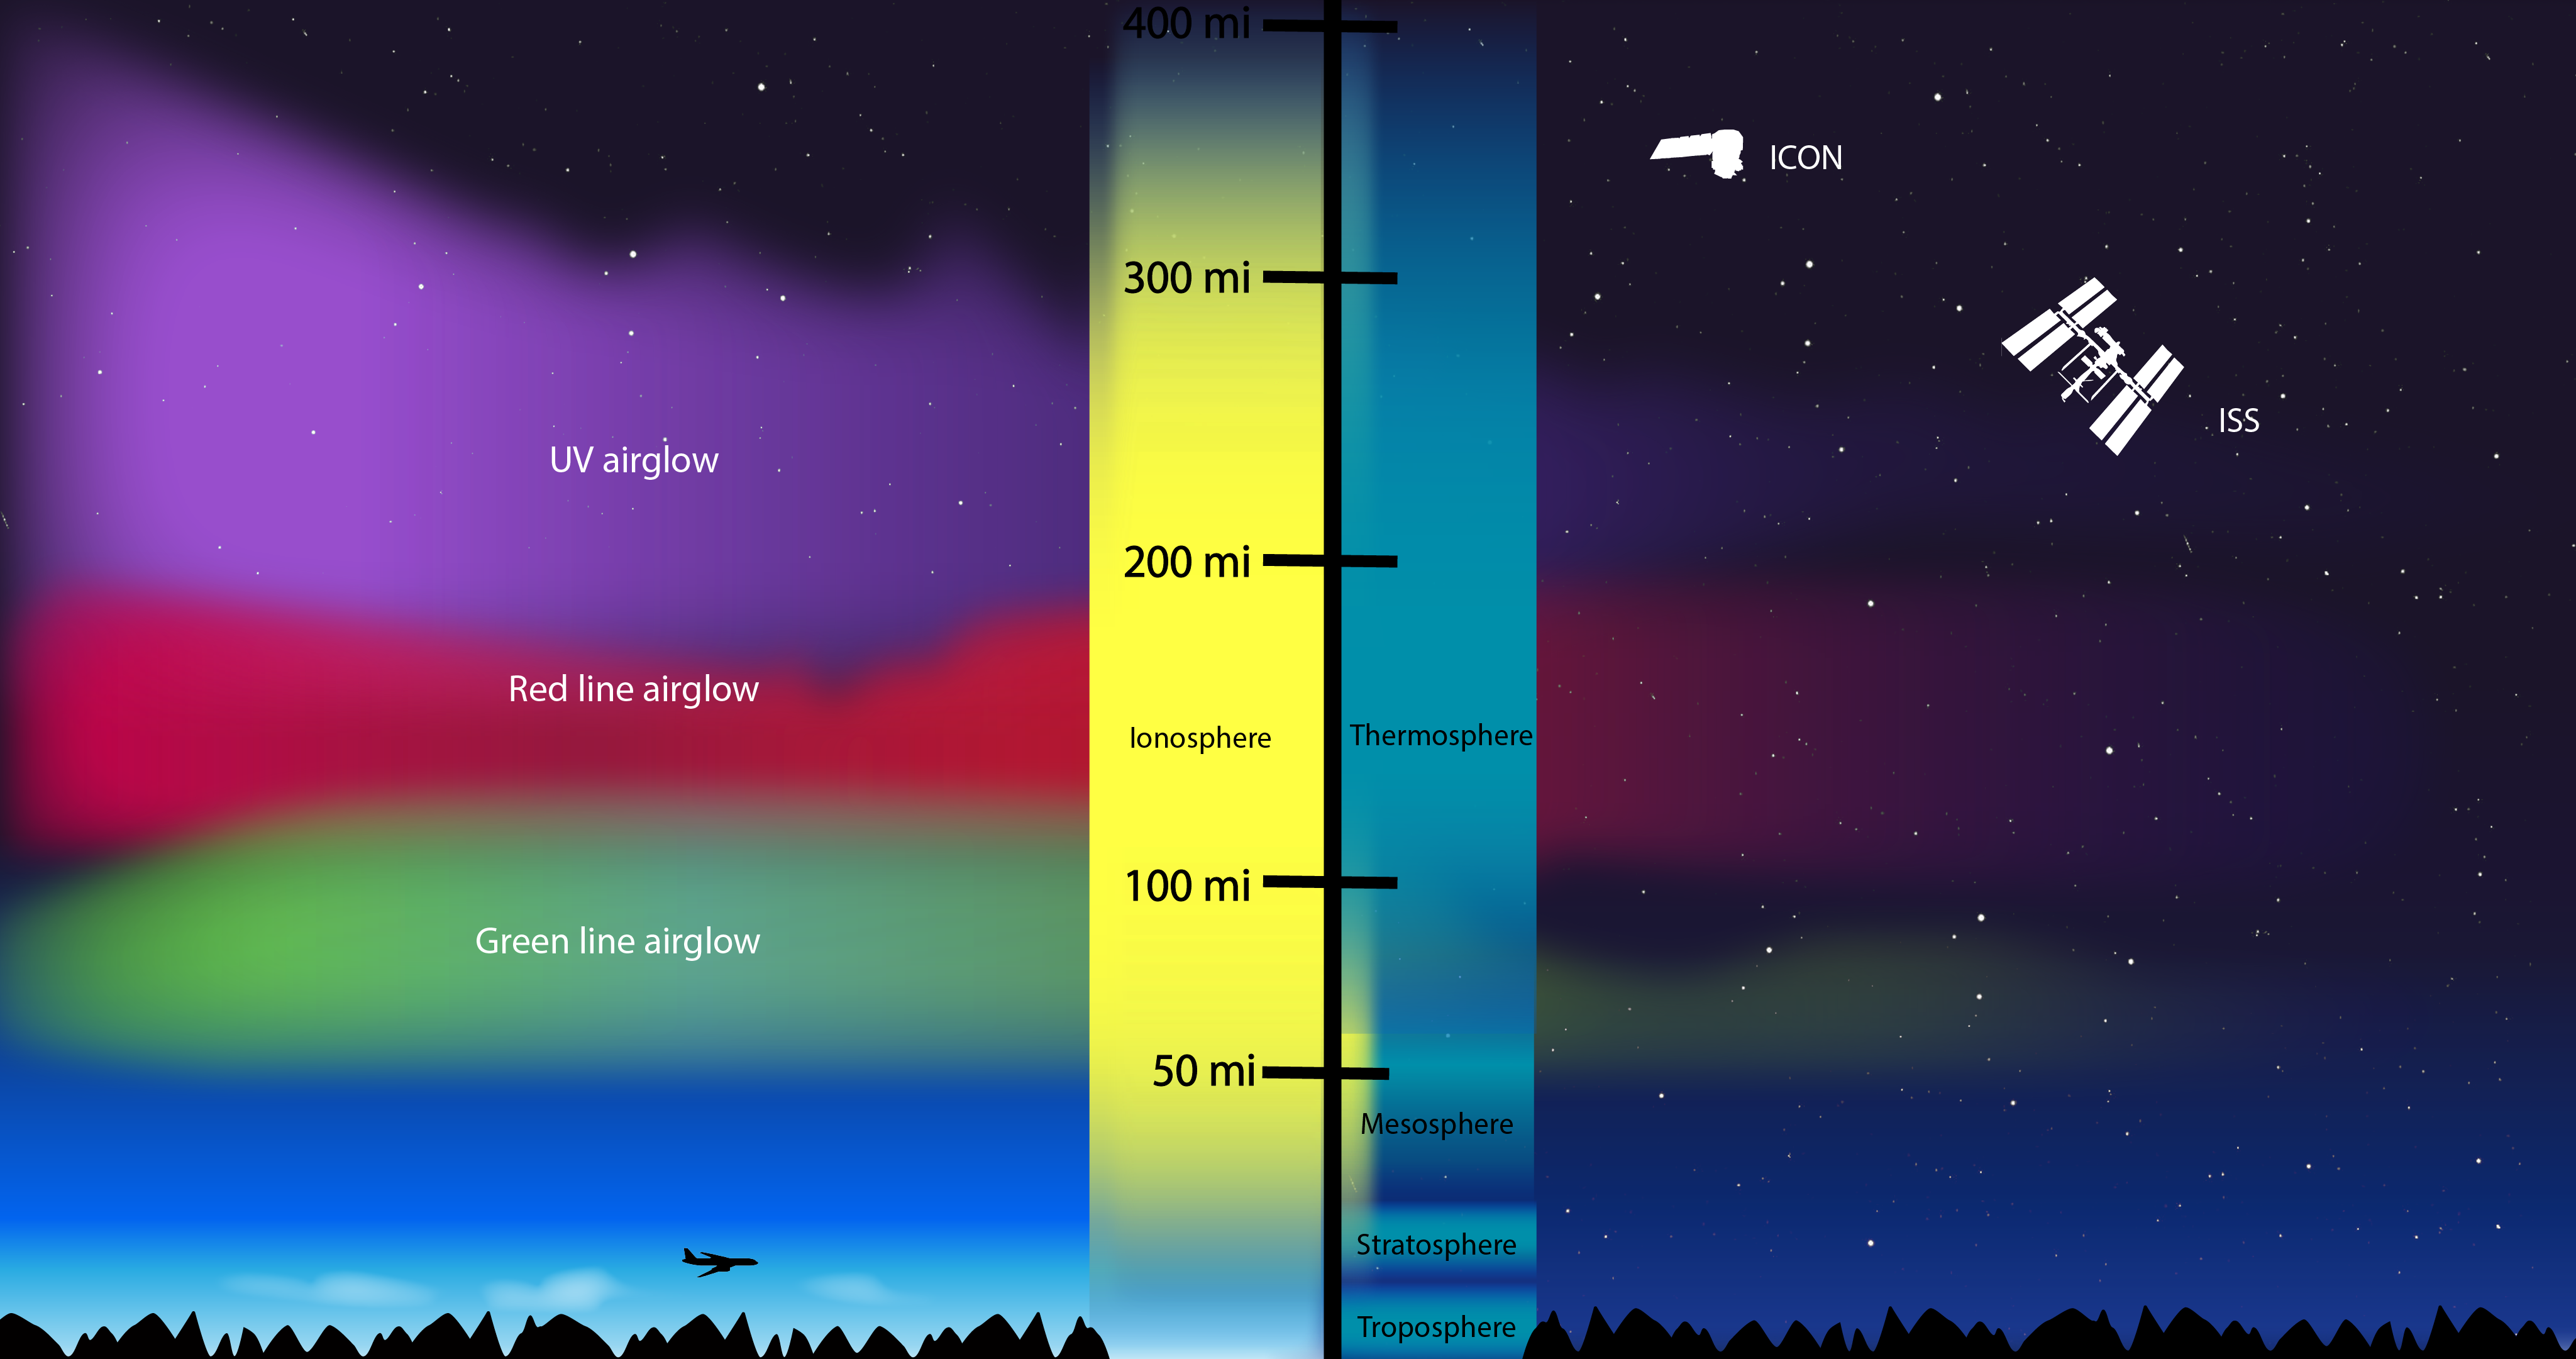 Nasas Icon Explores The Boundary Between Earth And Space Nasa Northedge Rover 1 Gps Wacth Informational Graphic Showing Cross Section Of Earths Atmospheric Layers